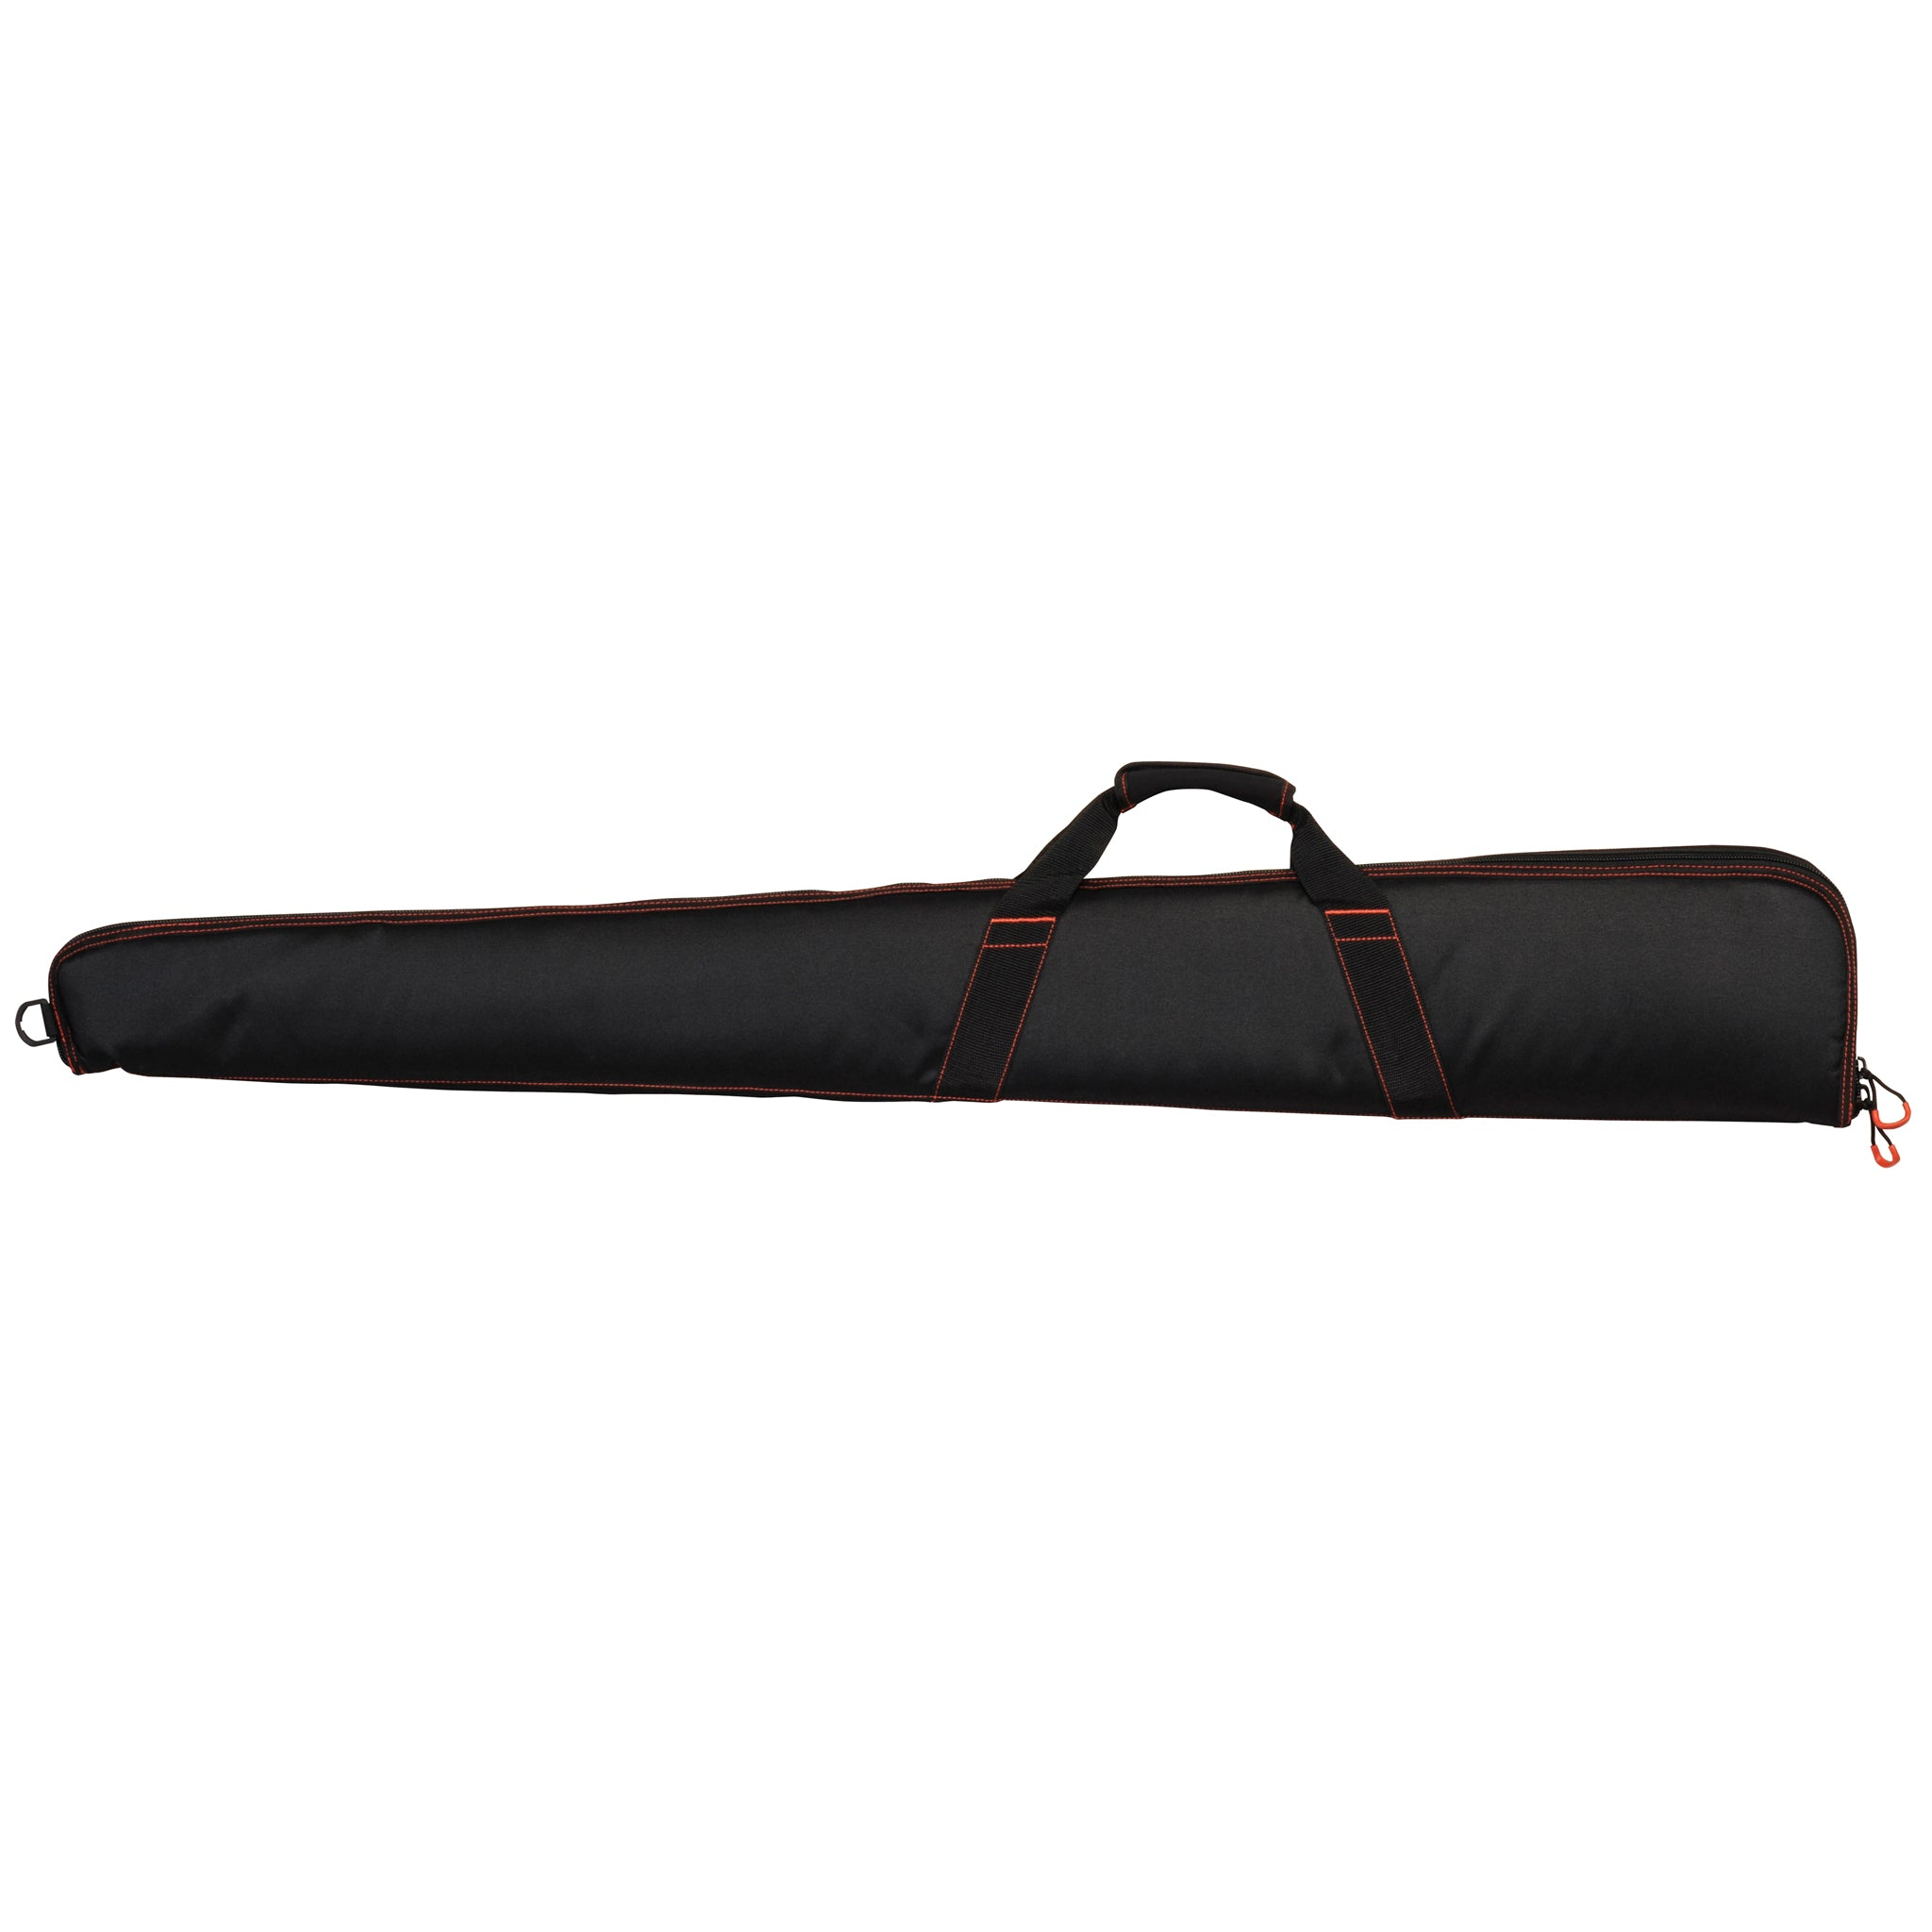 Expedition Series Mossy Oak Shotgun Case